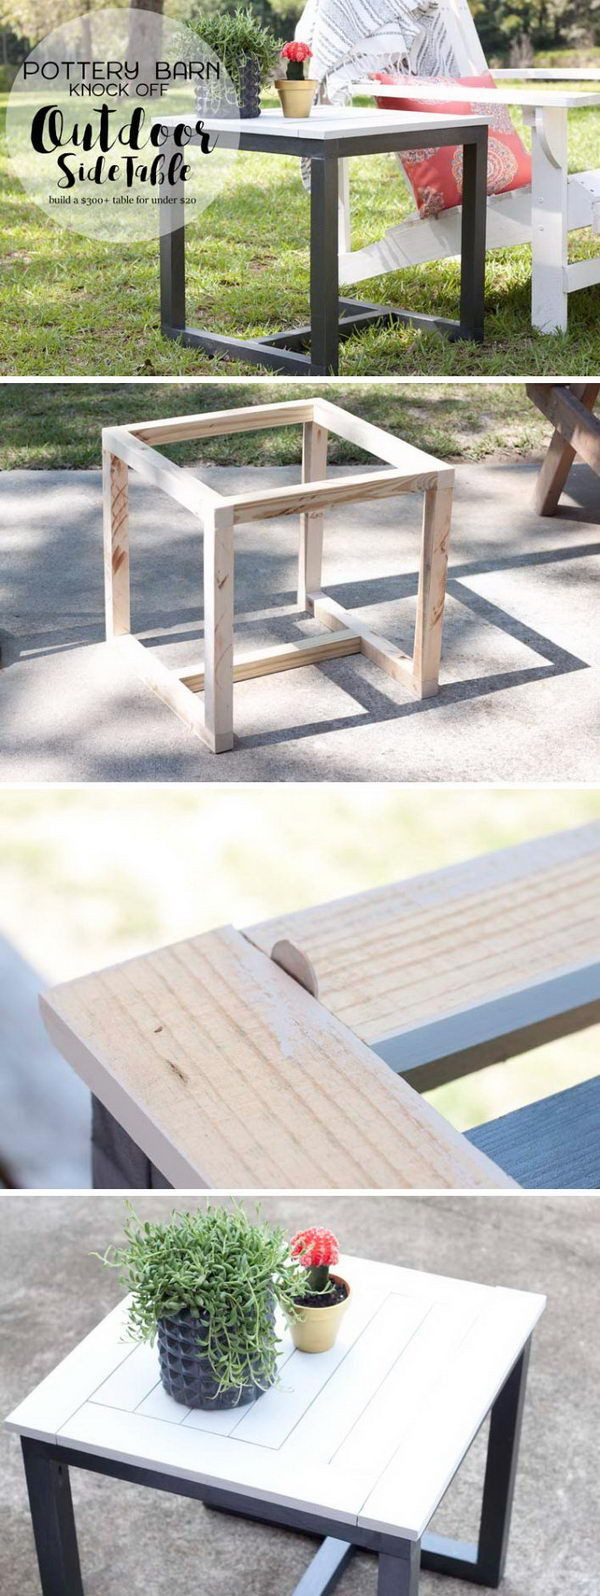 Best ideas about Outdoor Side Table Ideas . Save or Pin 25 unique Outdoor side table ideas on Pinterest Now.